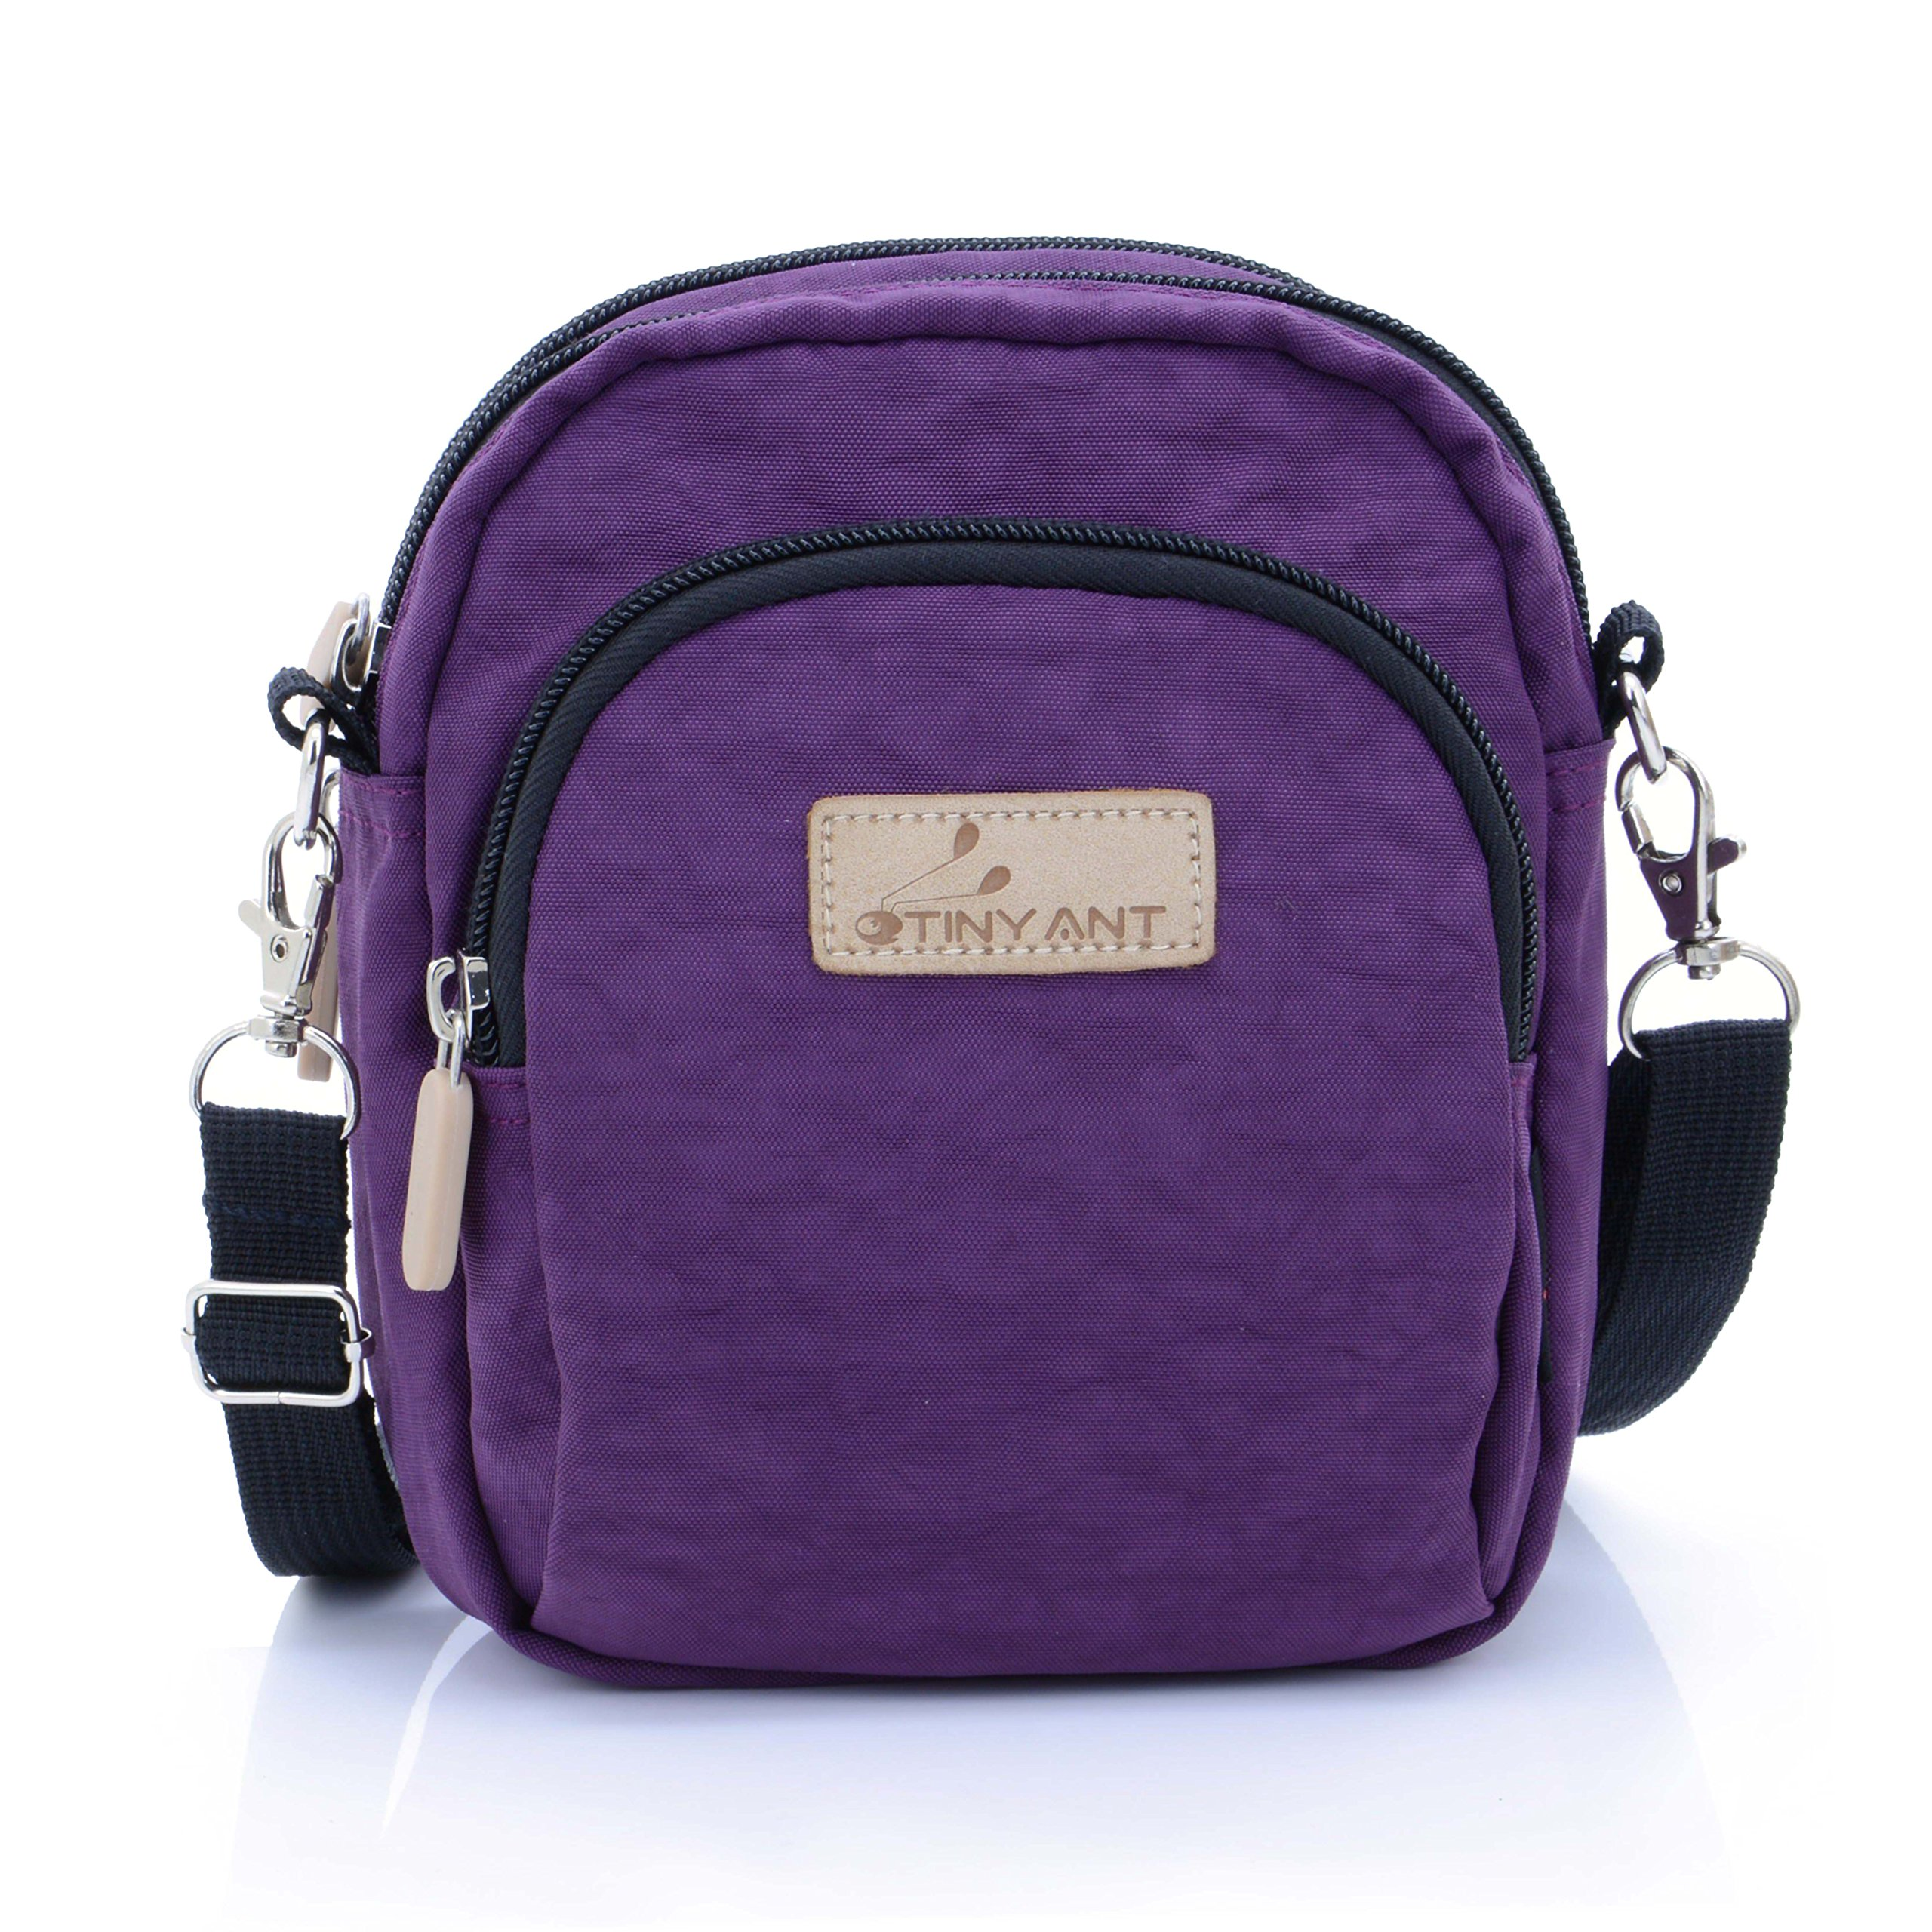 Women's 3 Layers Wristlet Purse Zipped Cell Phone Clutch Crossbody Handbags(Waist/Shoulder Bag-Dark Purple)